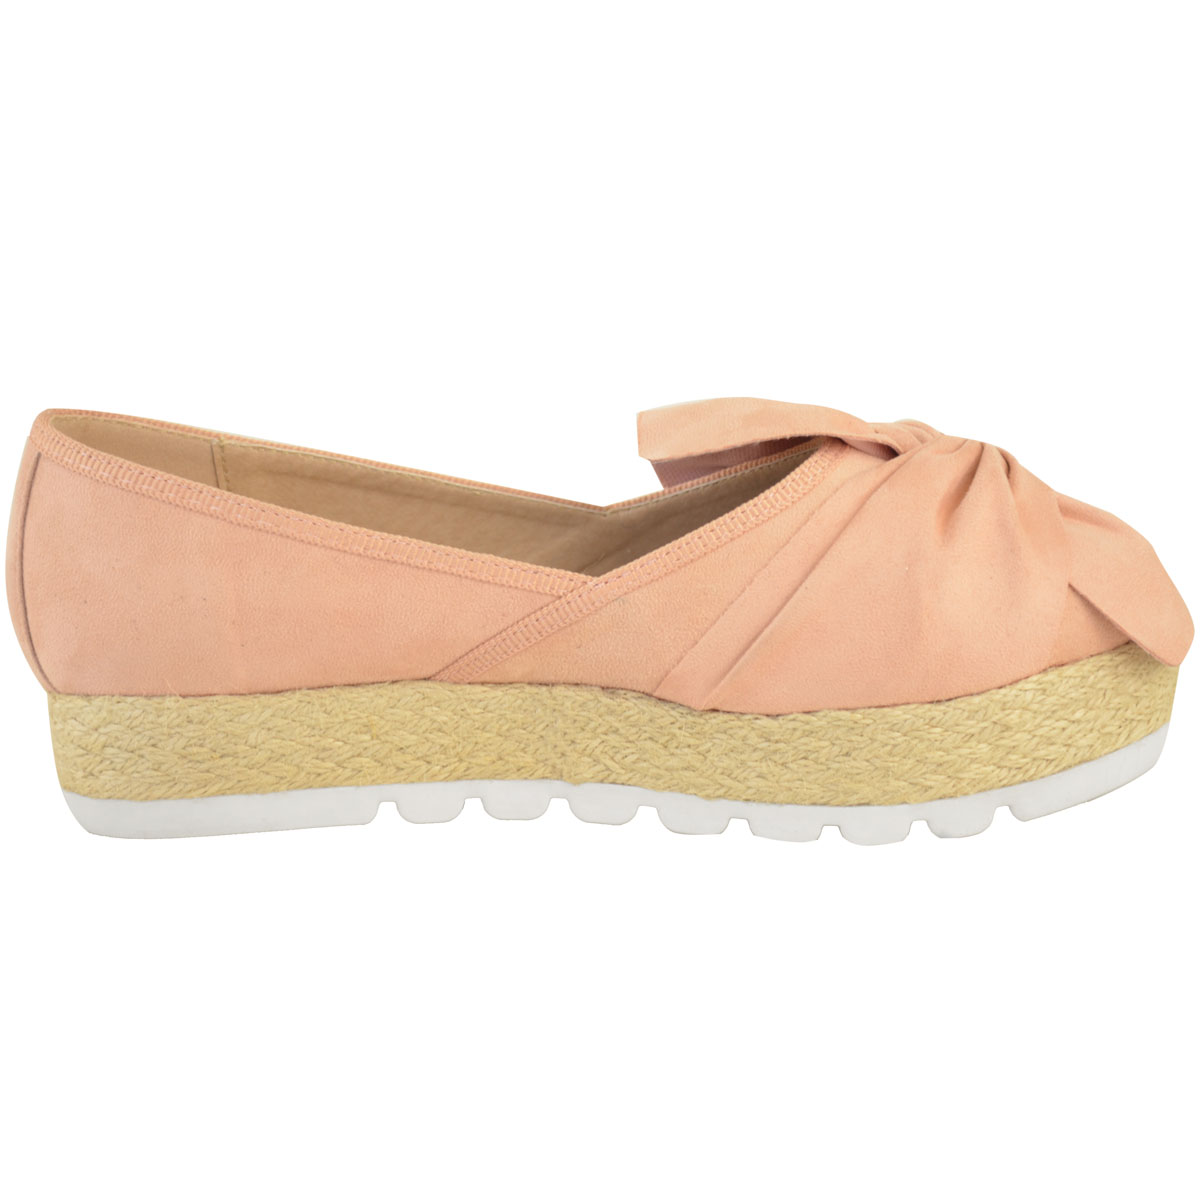 Womens-Ladies-Espadrilles-Flat-Pom-Pom-Sandals-Slip-On-Strappy-Comfy-Size-Shoes thumbnail 43